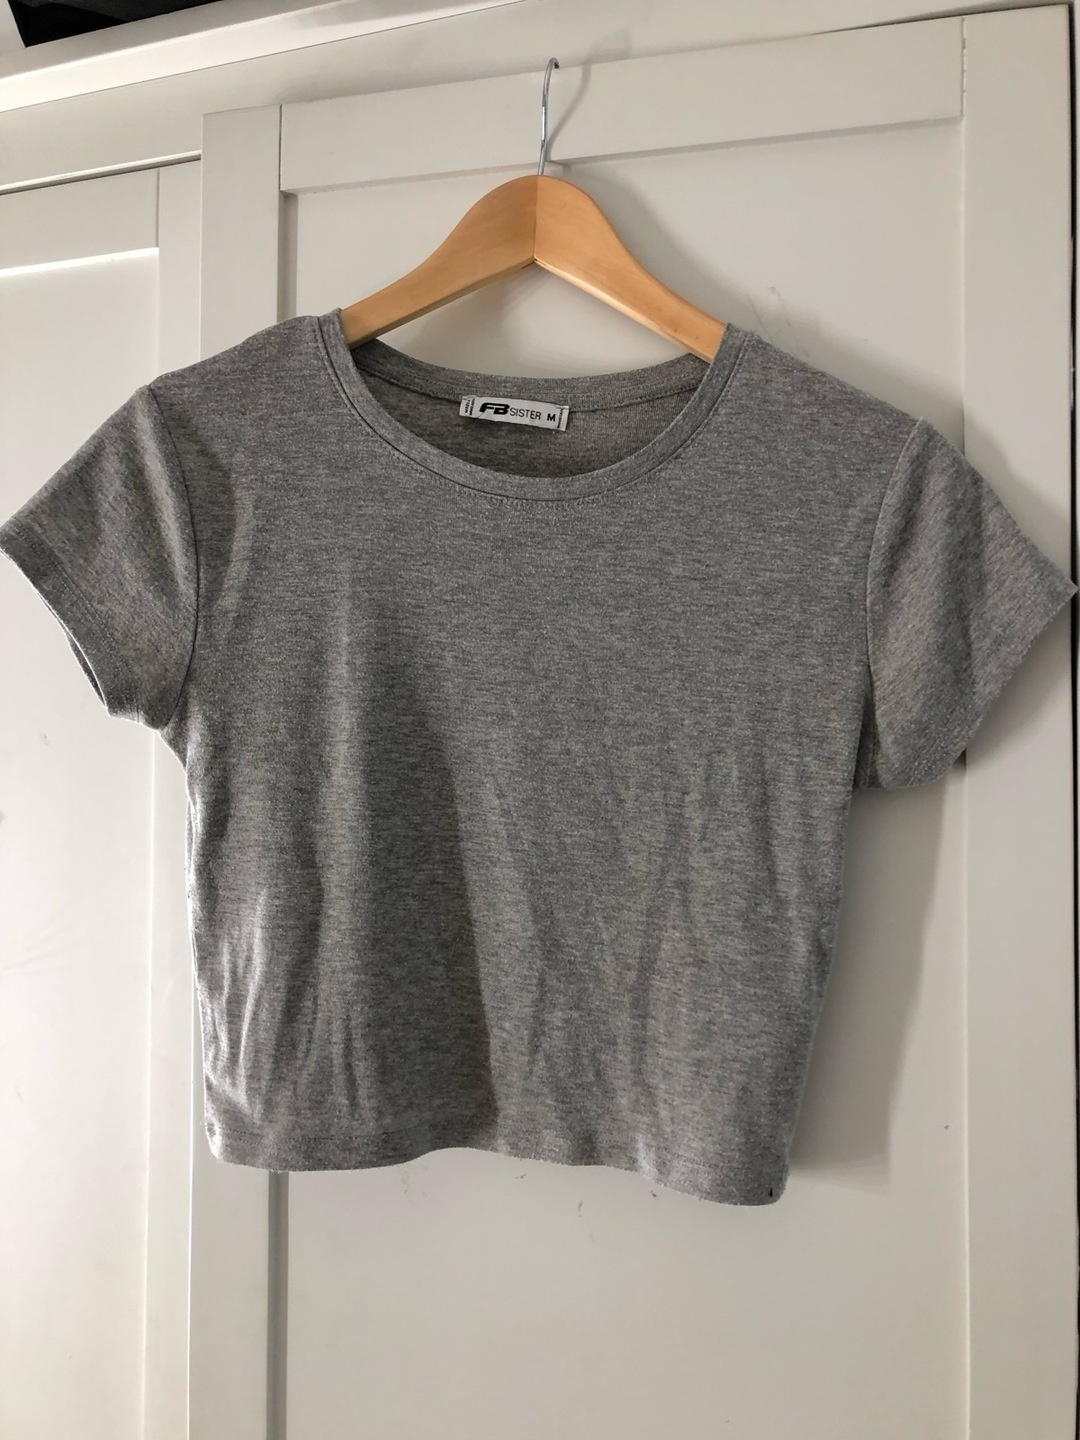 Women's tops & t-shirts - FB SISTER photo 2